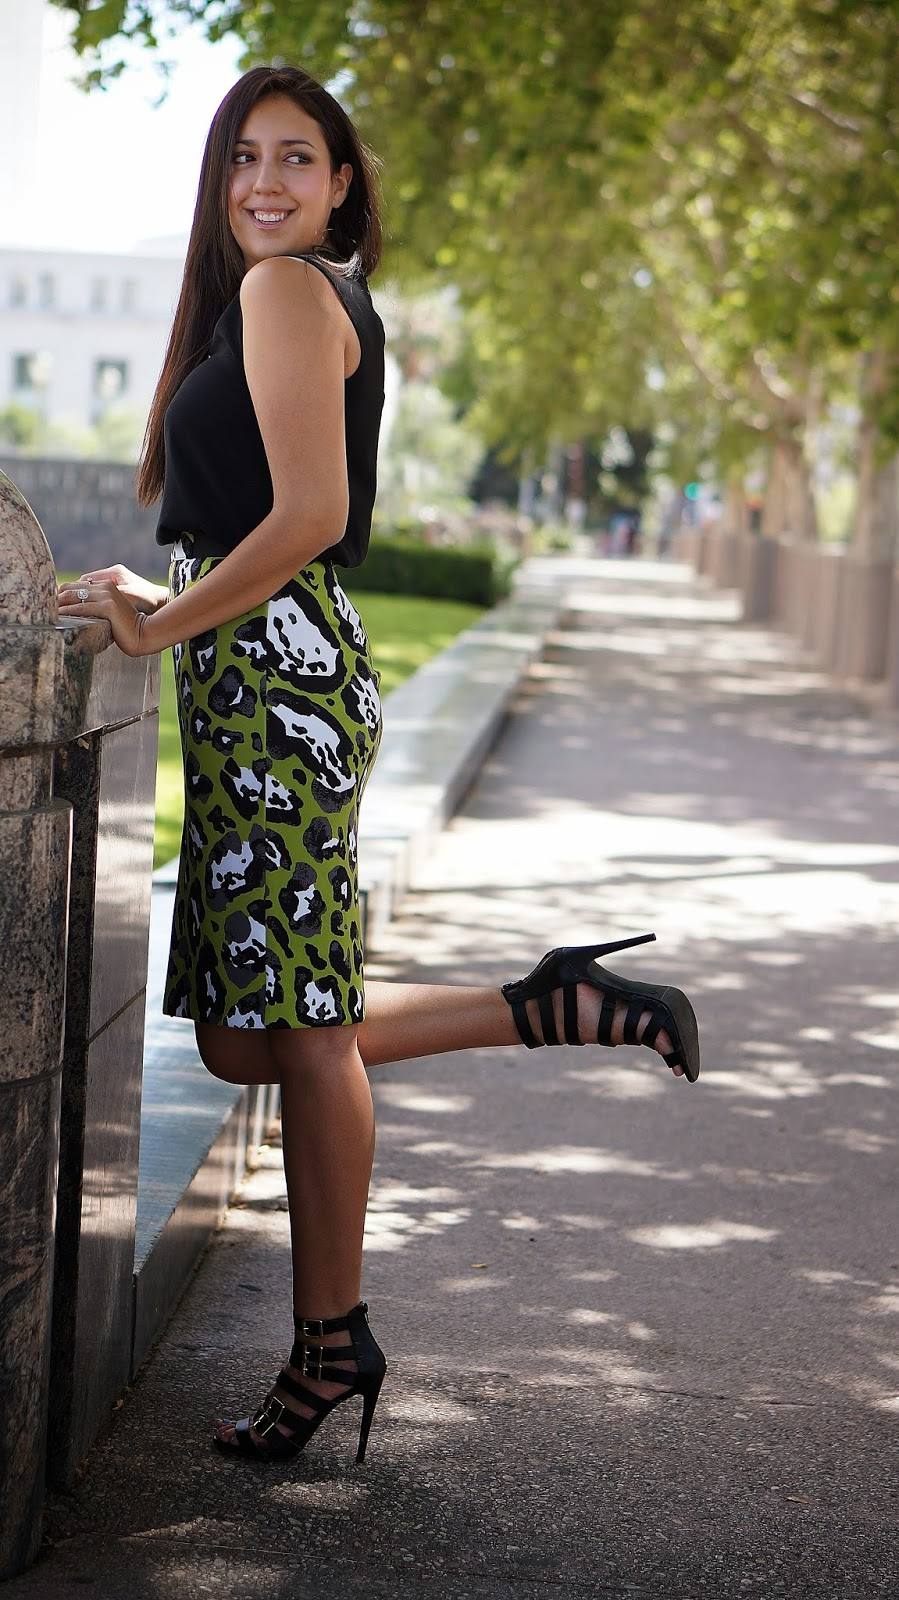 JCPenney Green Cheetah Pencil Skirt, Fashion Blogger, Animal Print Fashion